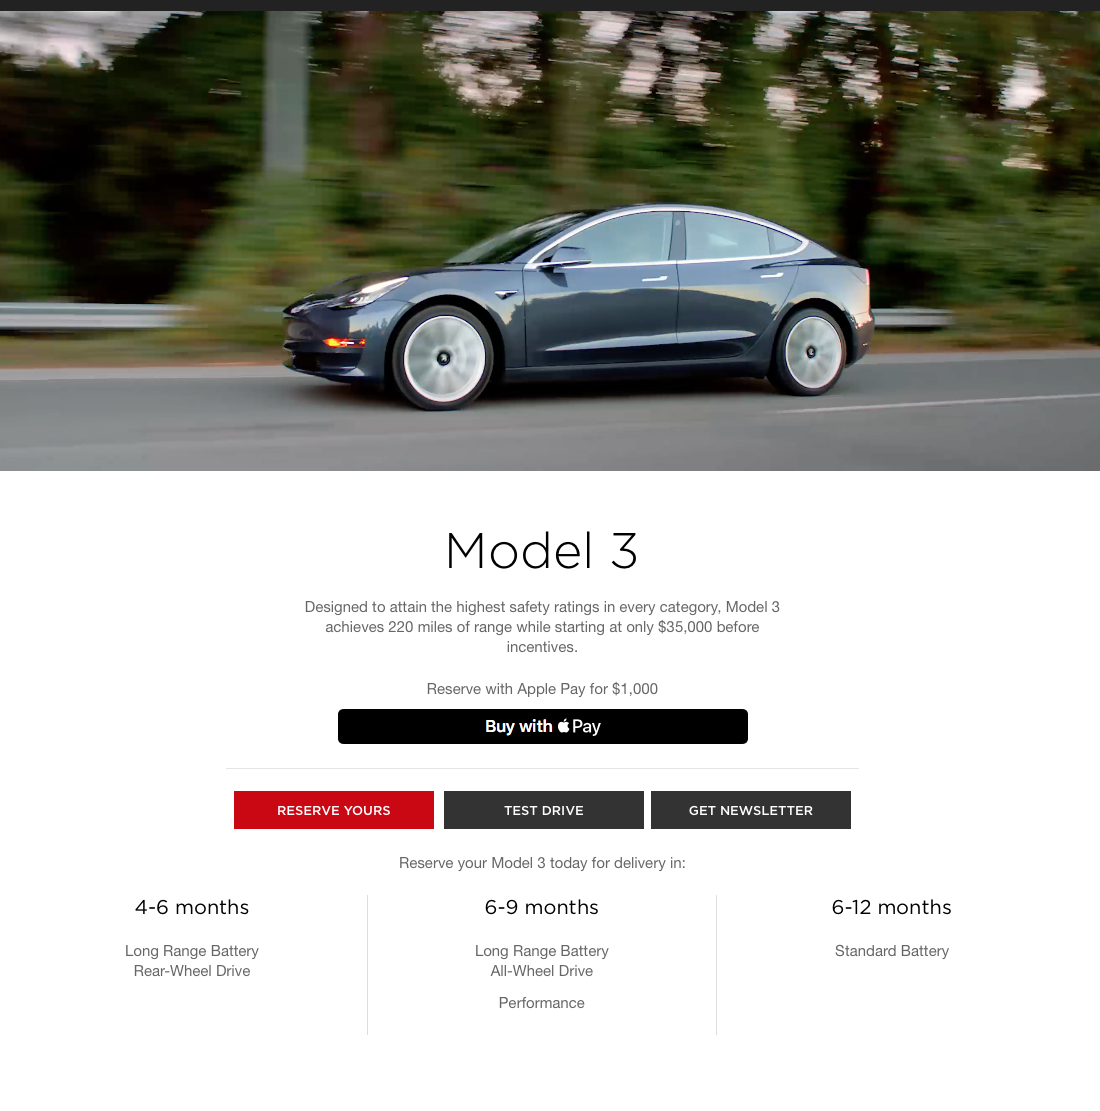 Tesla's Performance model is a 6-9 month wait for reservation holders who put up a $1,000 deposit today, according to the company's website.